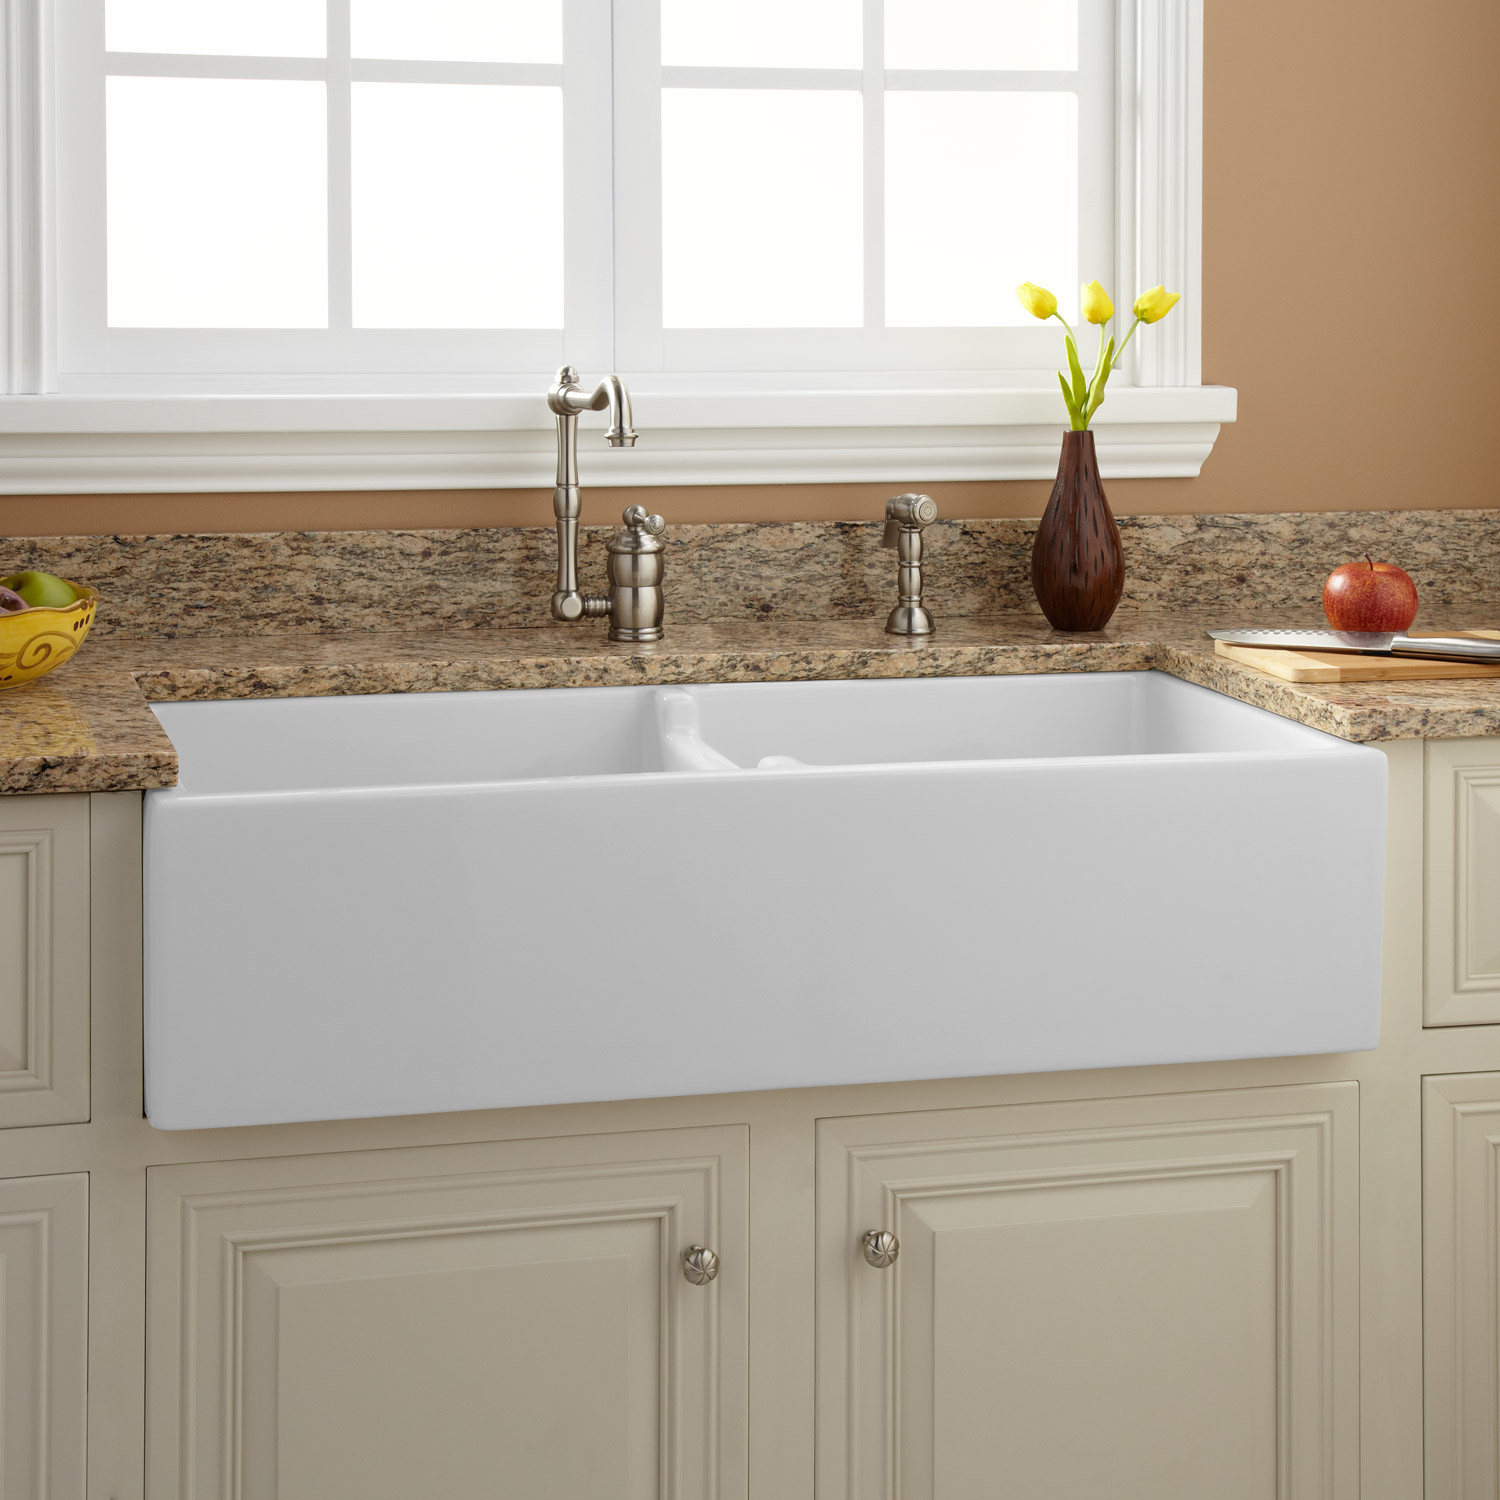 """Best ideas about Farmhouse Bathroom Sink . Save or Pin 39"""" Risinger Double Bowl Fireclay Farmhouse Sink White Now."""